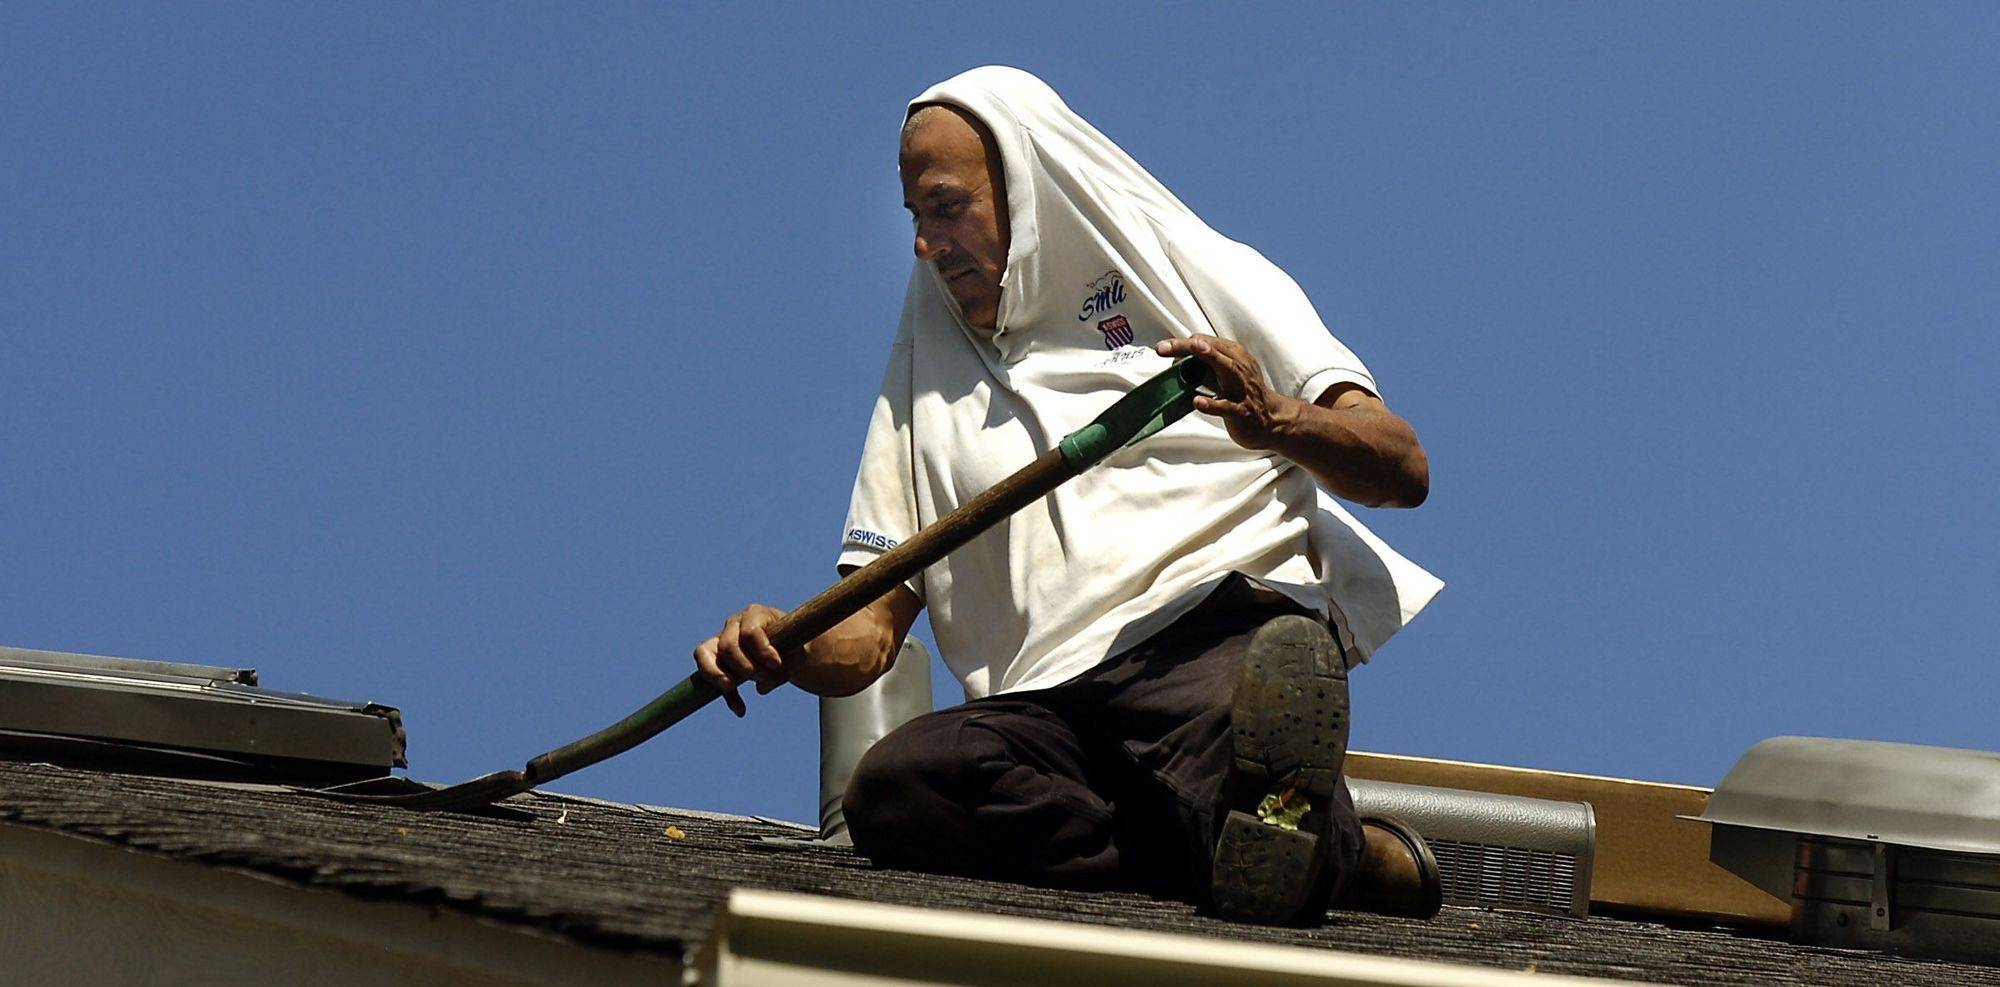 Replacing the skylights on the roof of a home in Bartlett, Salvador Hernandes of St. Charles uses his extra large shirt to shield himself from the sun as he uses a pitchfork to lift up the shingles.